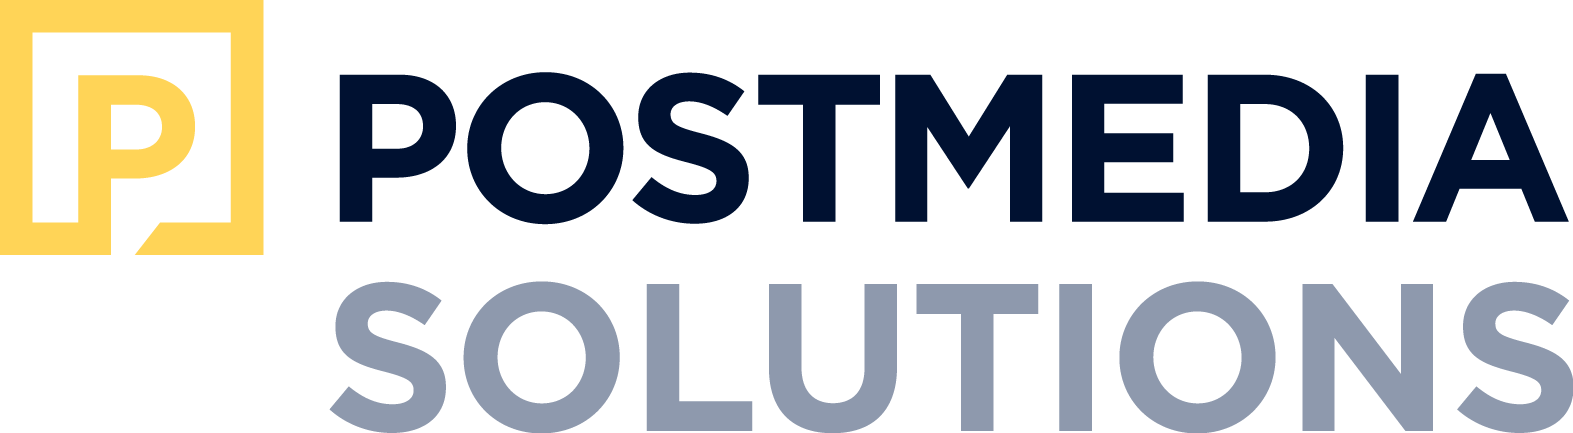 PostmediaSolutions_primary_col